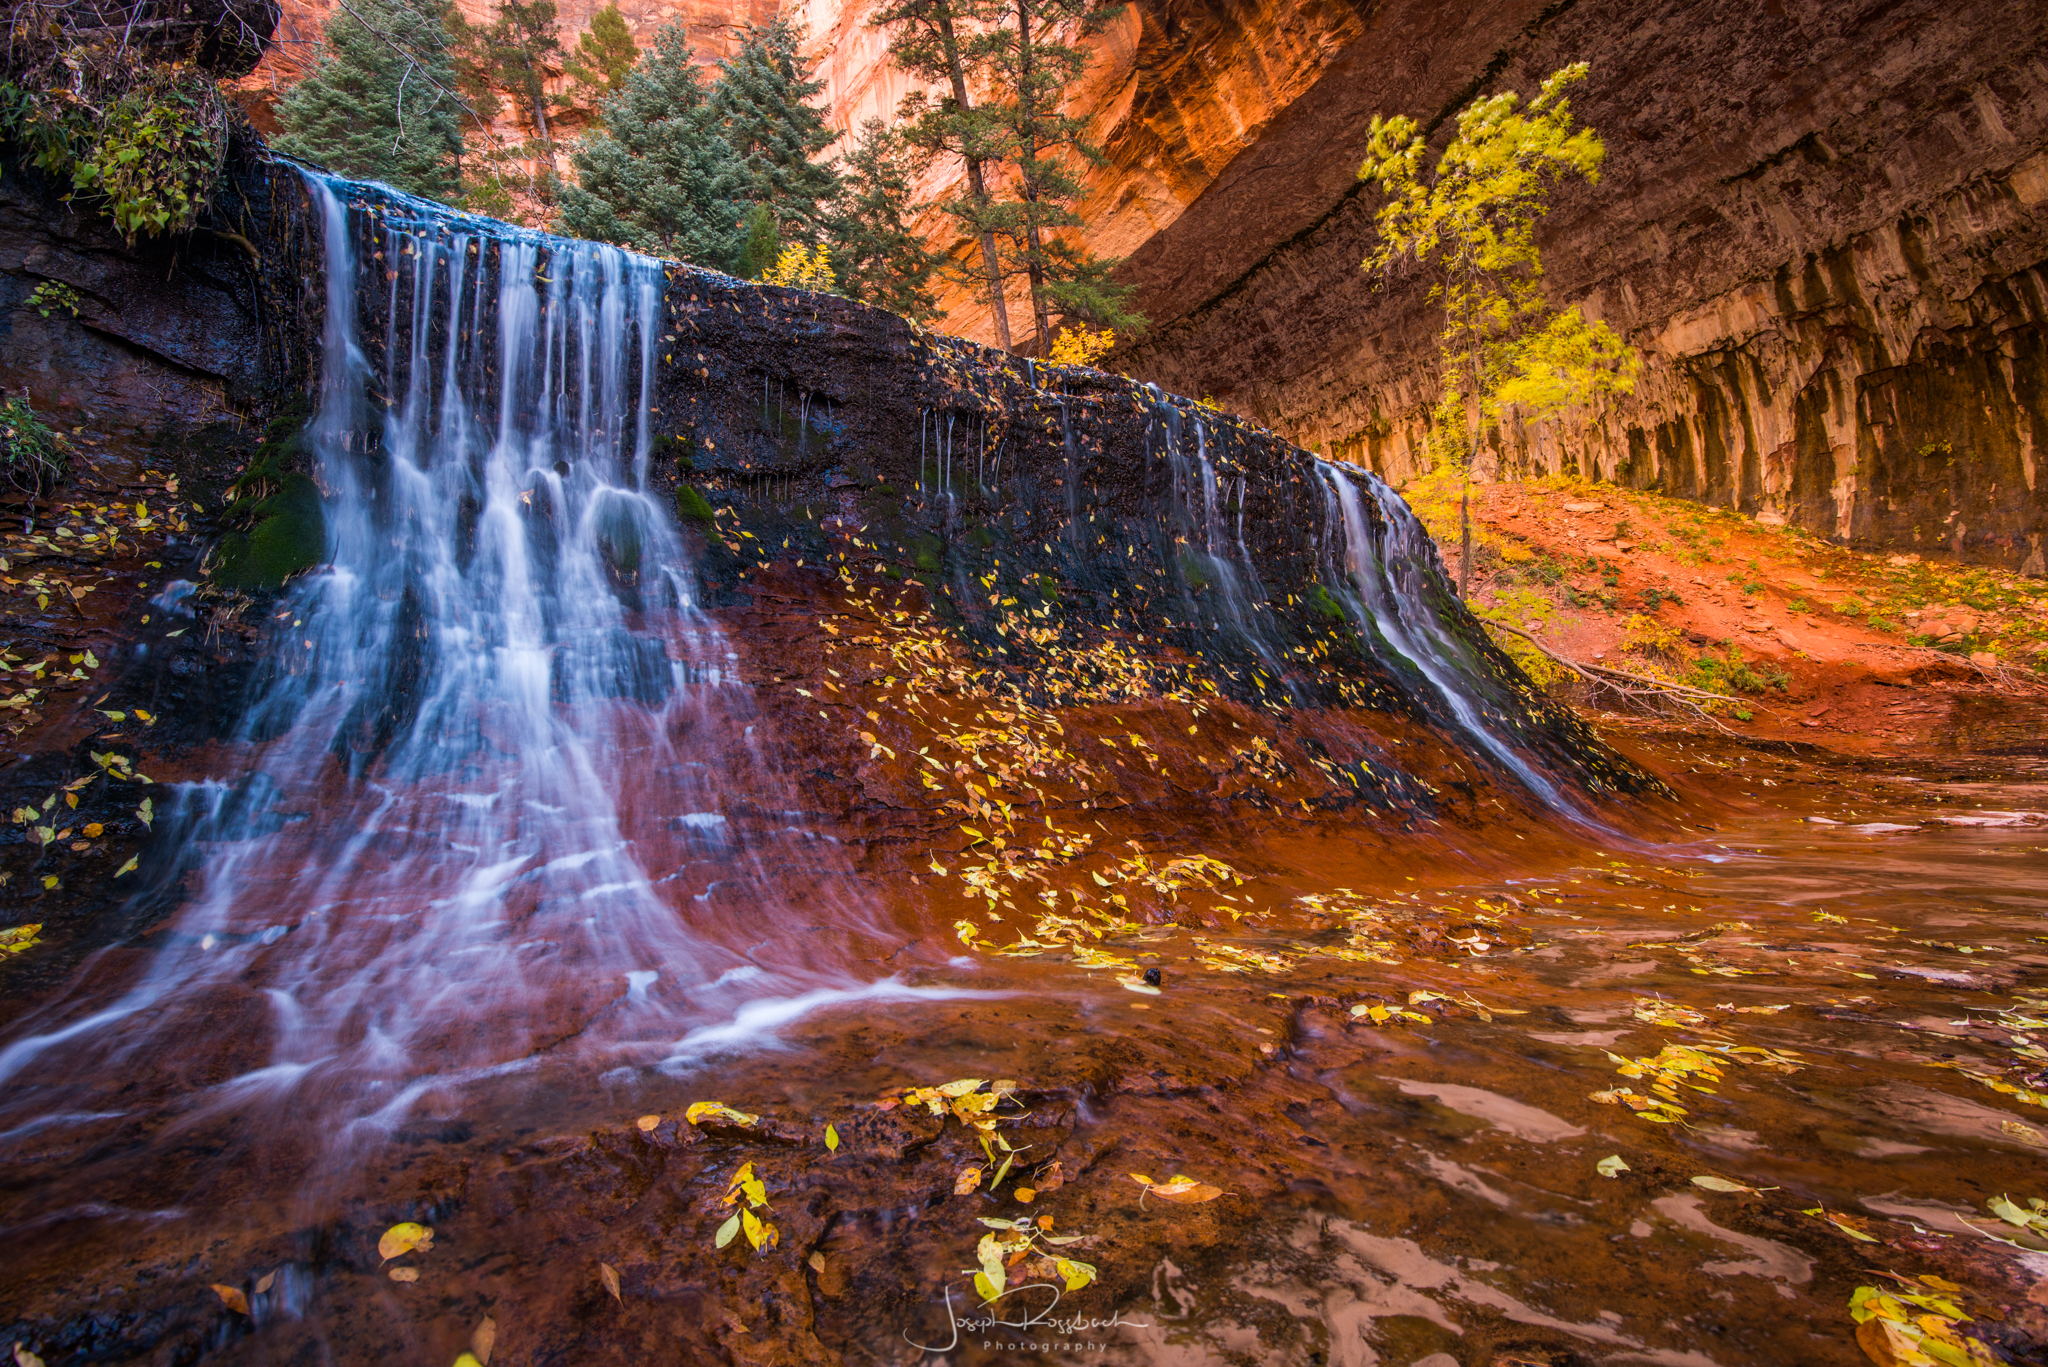 subway-zion-waterfall-autumn.jpg